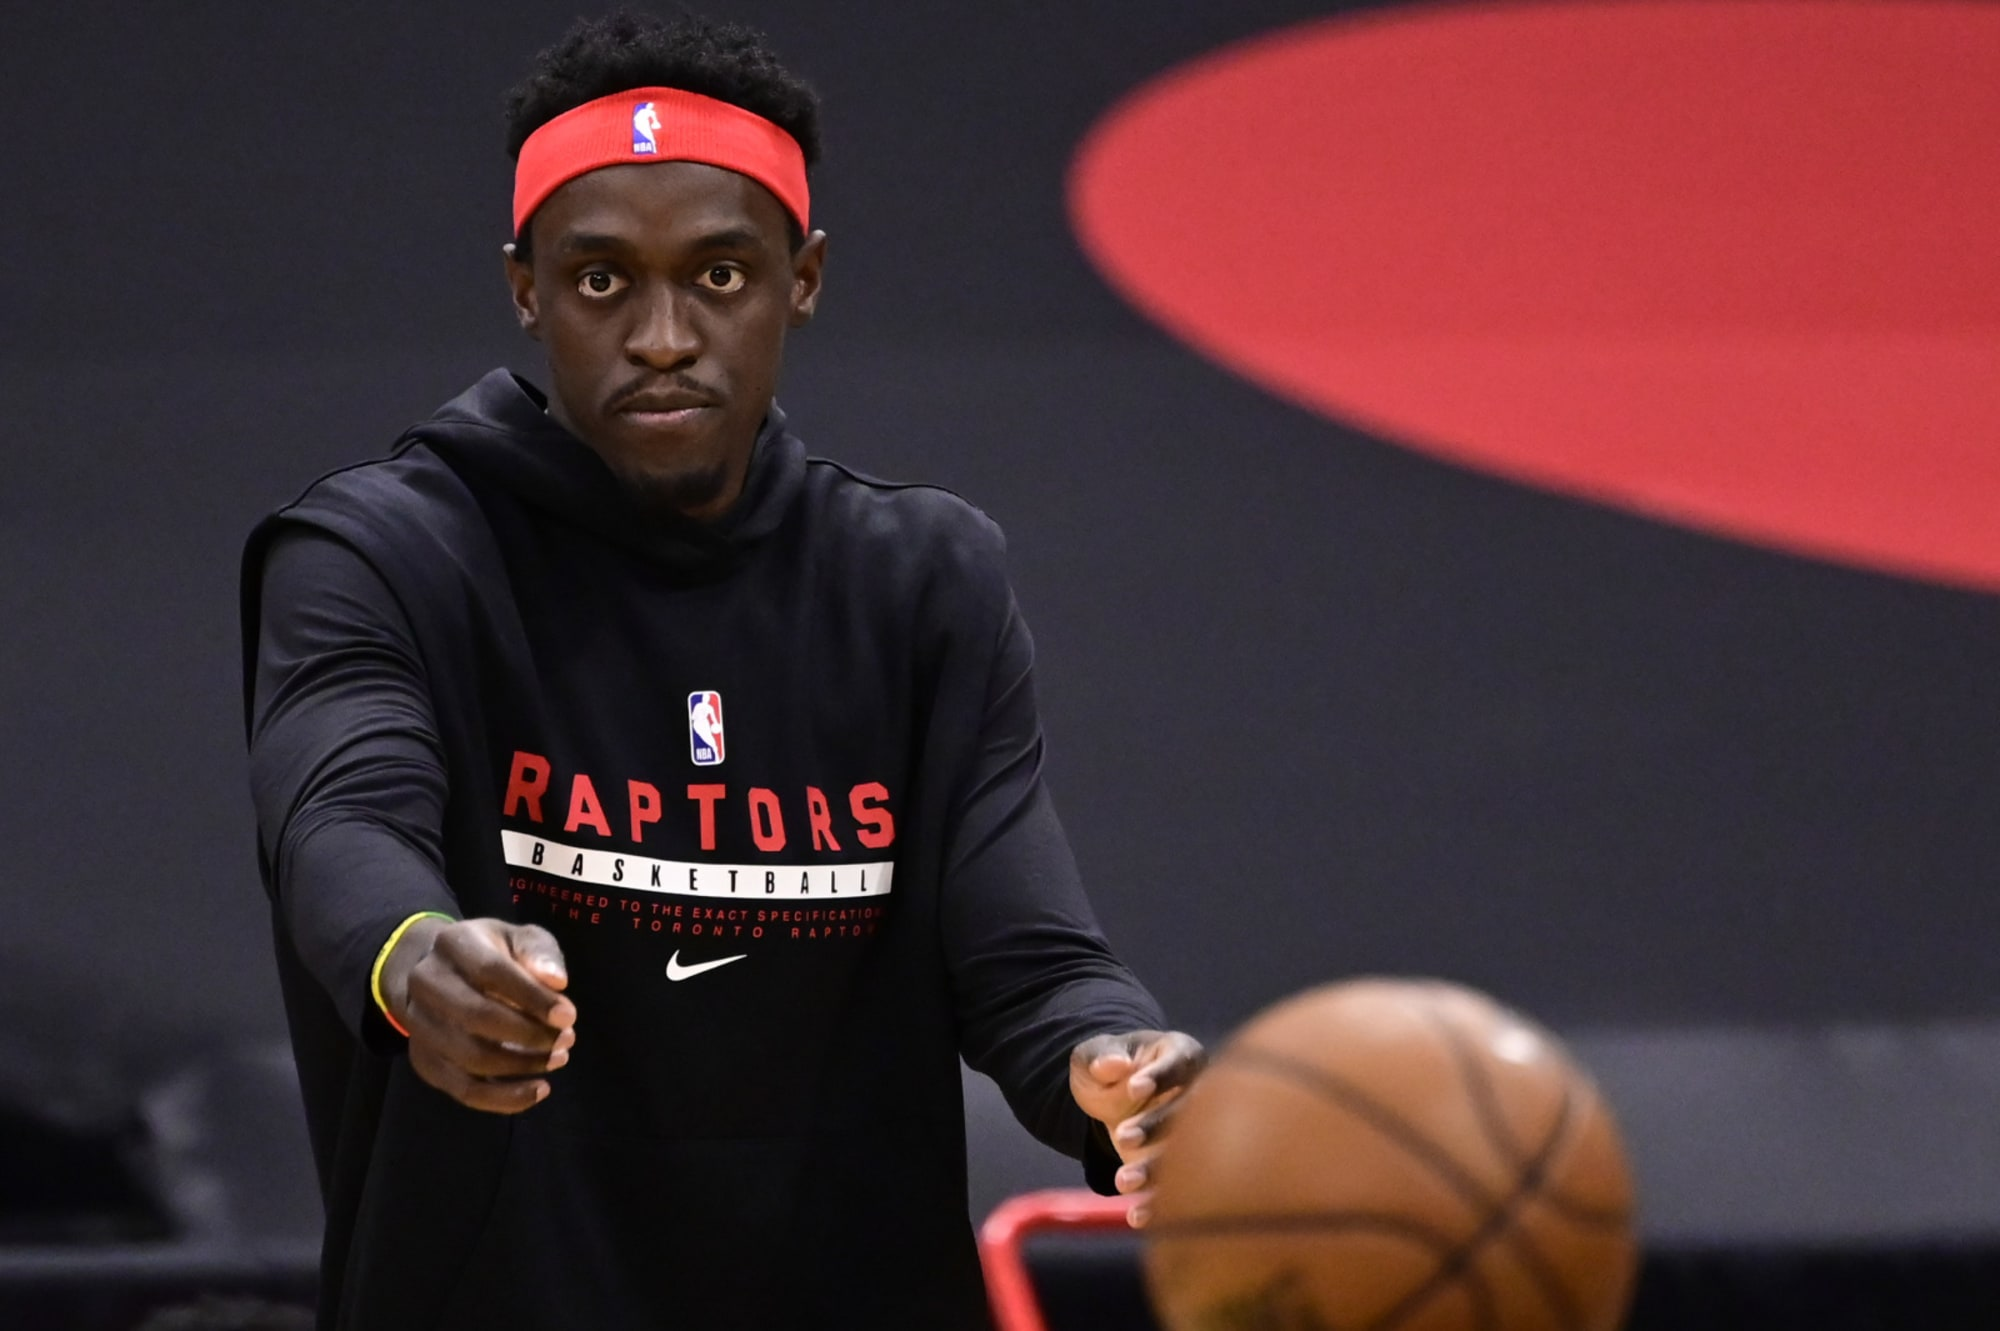 Toronto Raptors: Pascal Siakam reportedly crossed lined, got personal in Nick Nurse spat